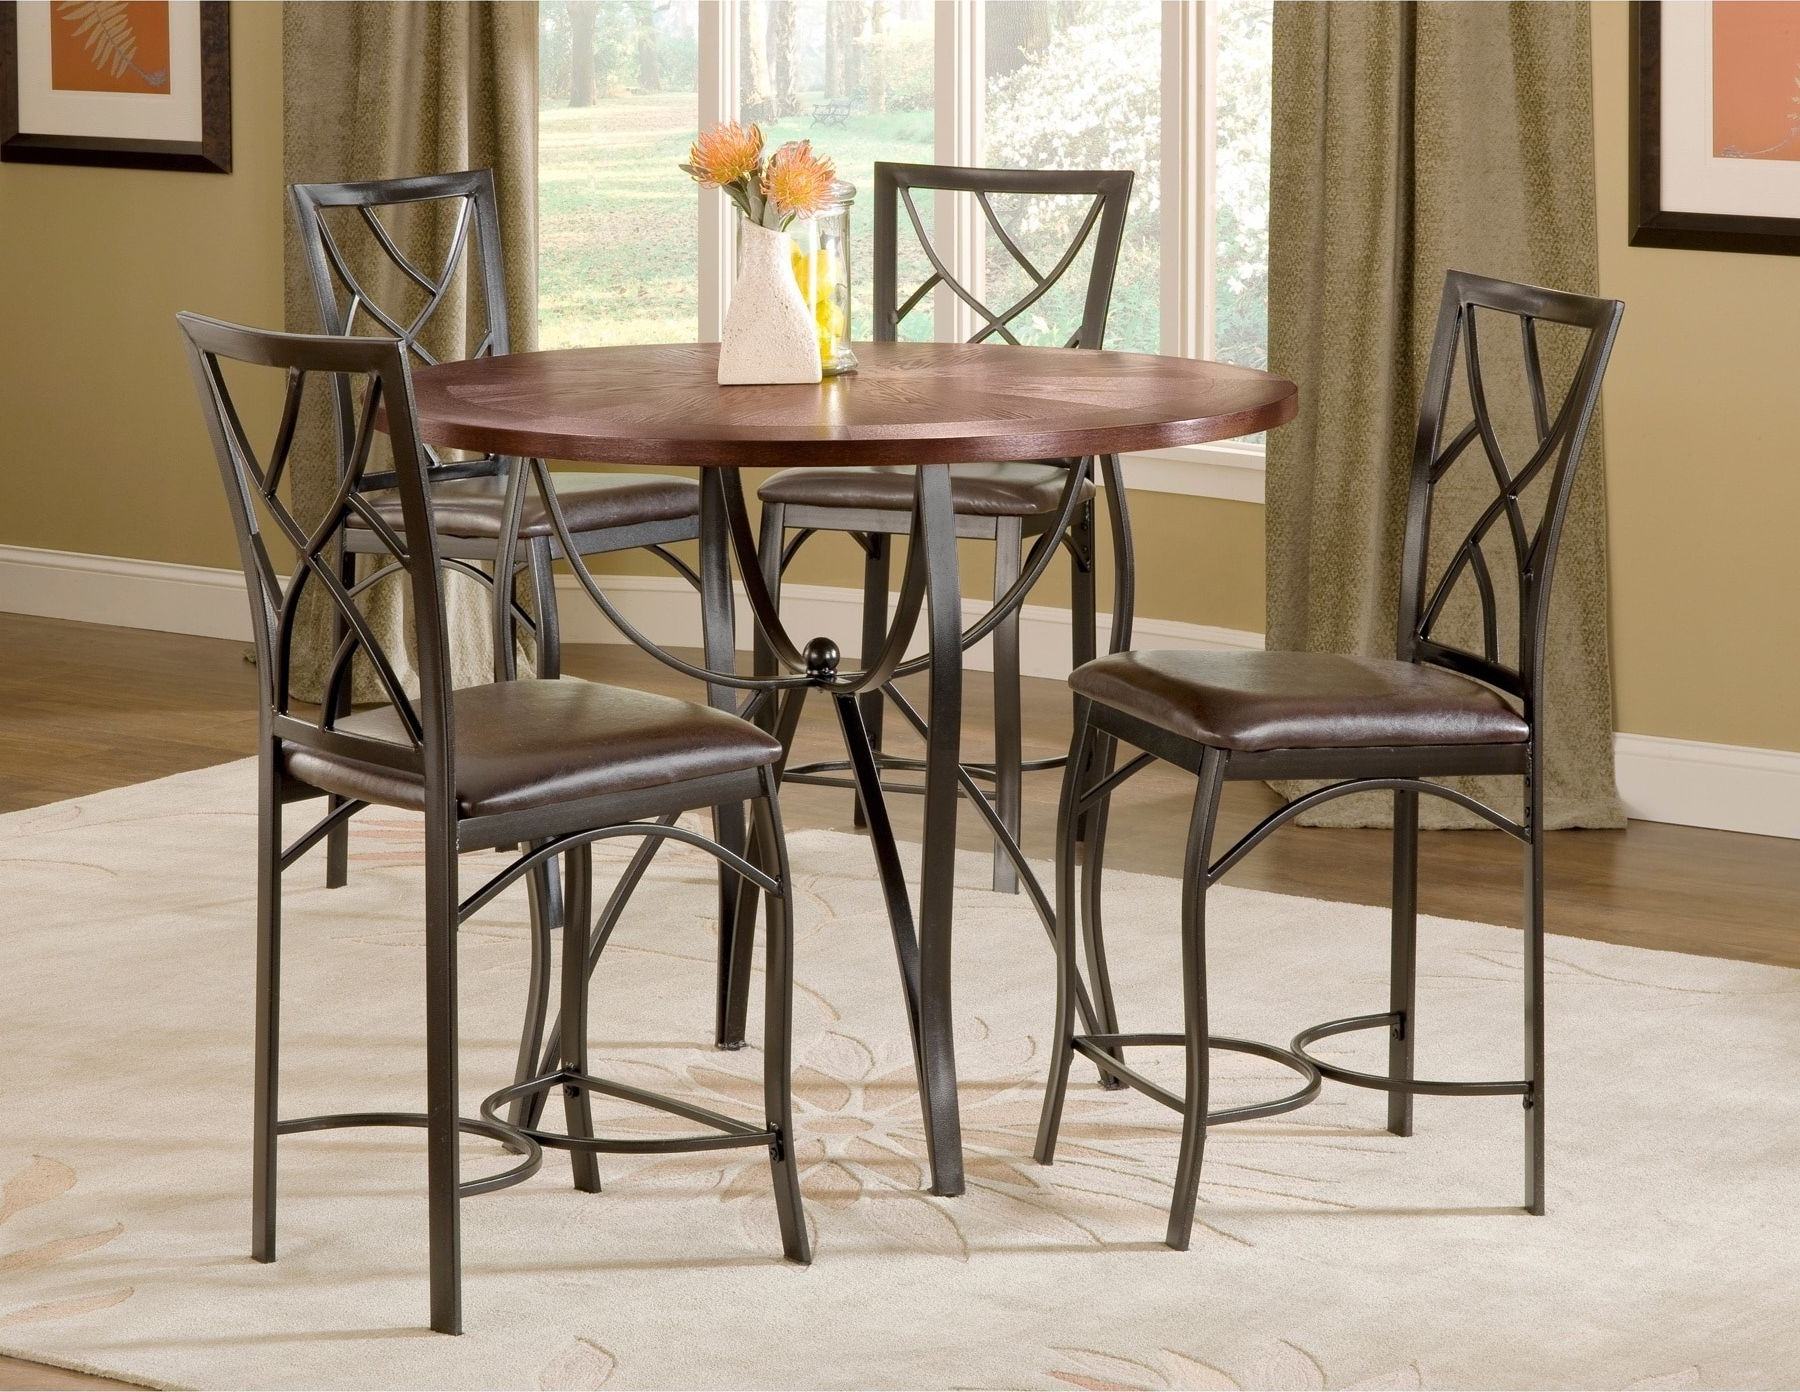 Jaxon 5 Piece Extension Counter Sets With Wood Stools in Most Recent Sanford Merlot 5 Piece Counter Height Table And 4 Chairs Black Metal